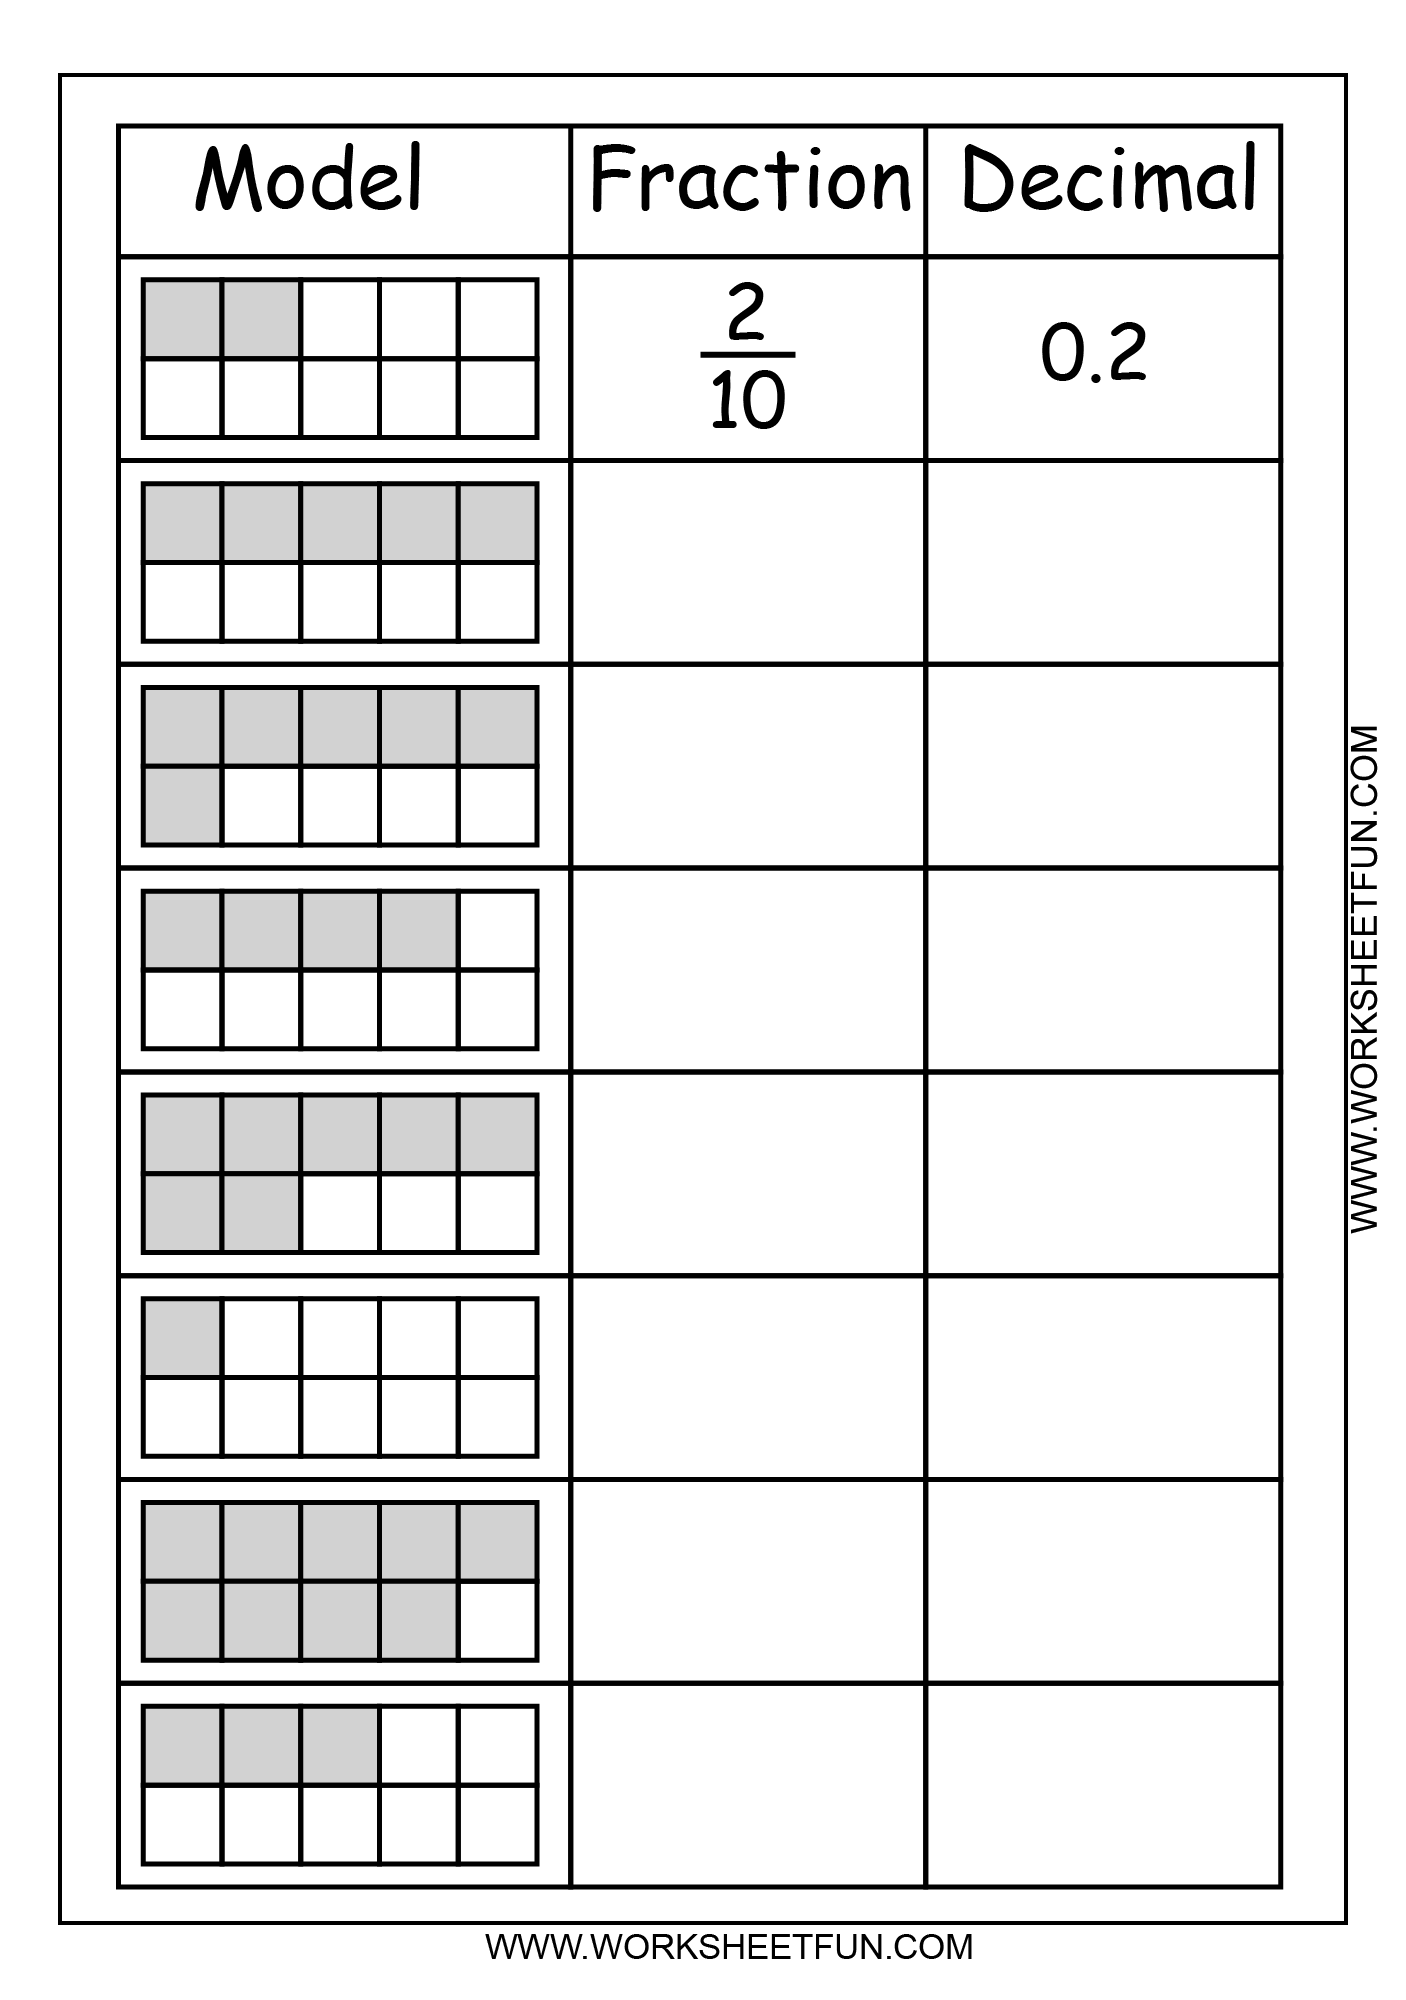 Worksheet Fraction To Decimal Worksheet 1000 images about decimal worksheets on pinterest models kid and adding decimals